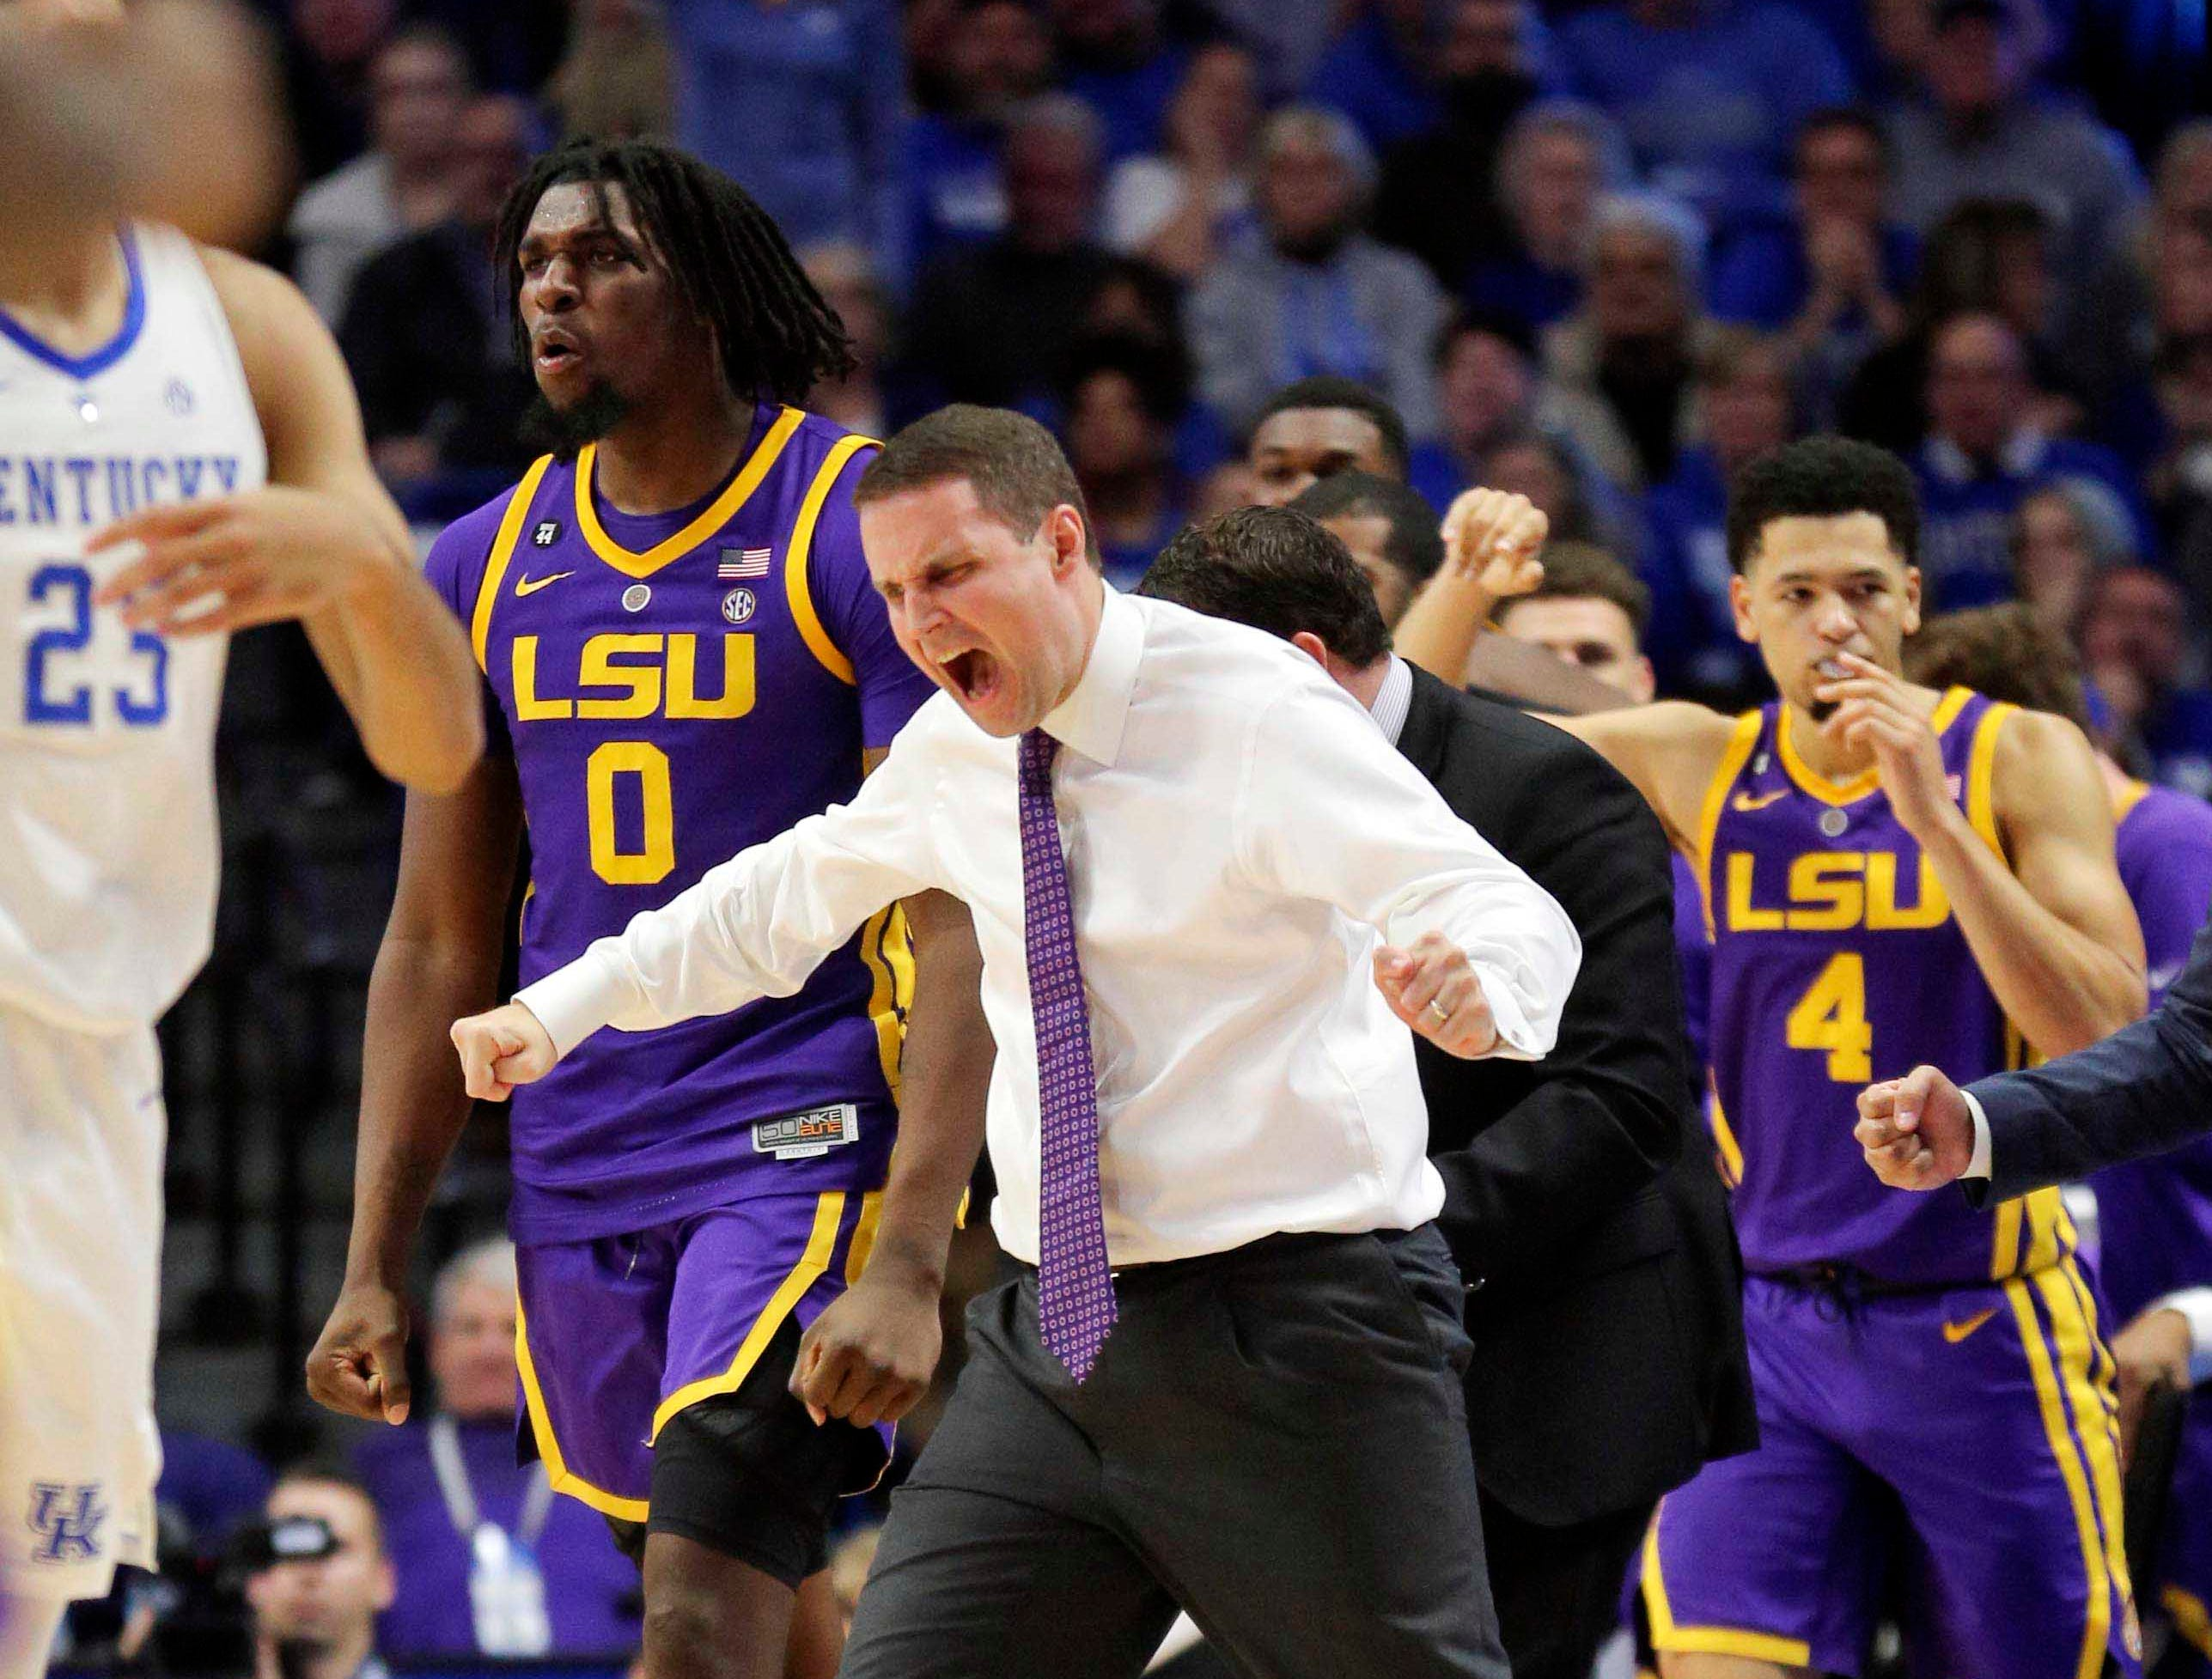 Feb 12, 2019; Lexington, KY, USA; LSU Tigers head coach Will Wade celebrates with his players during the game against the Kentucky Wildcats in the second half at Rupp Arena. Mandatory Credit: Mark Zerof-USA TODAY Sports